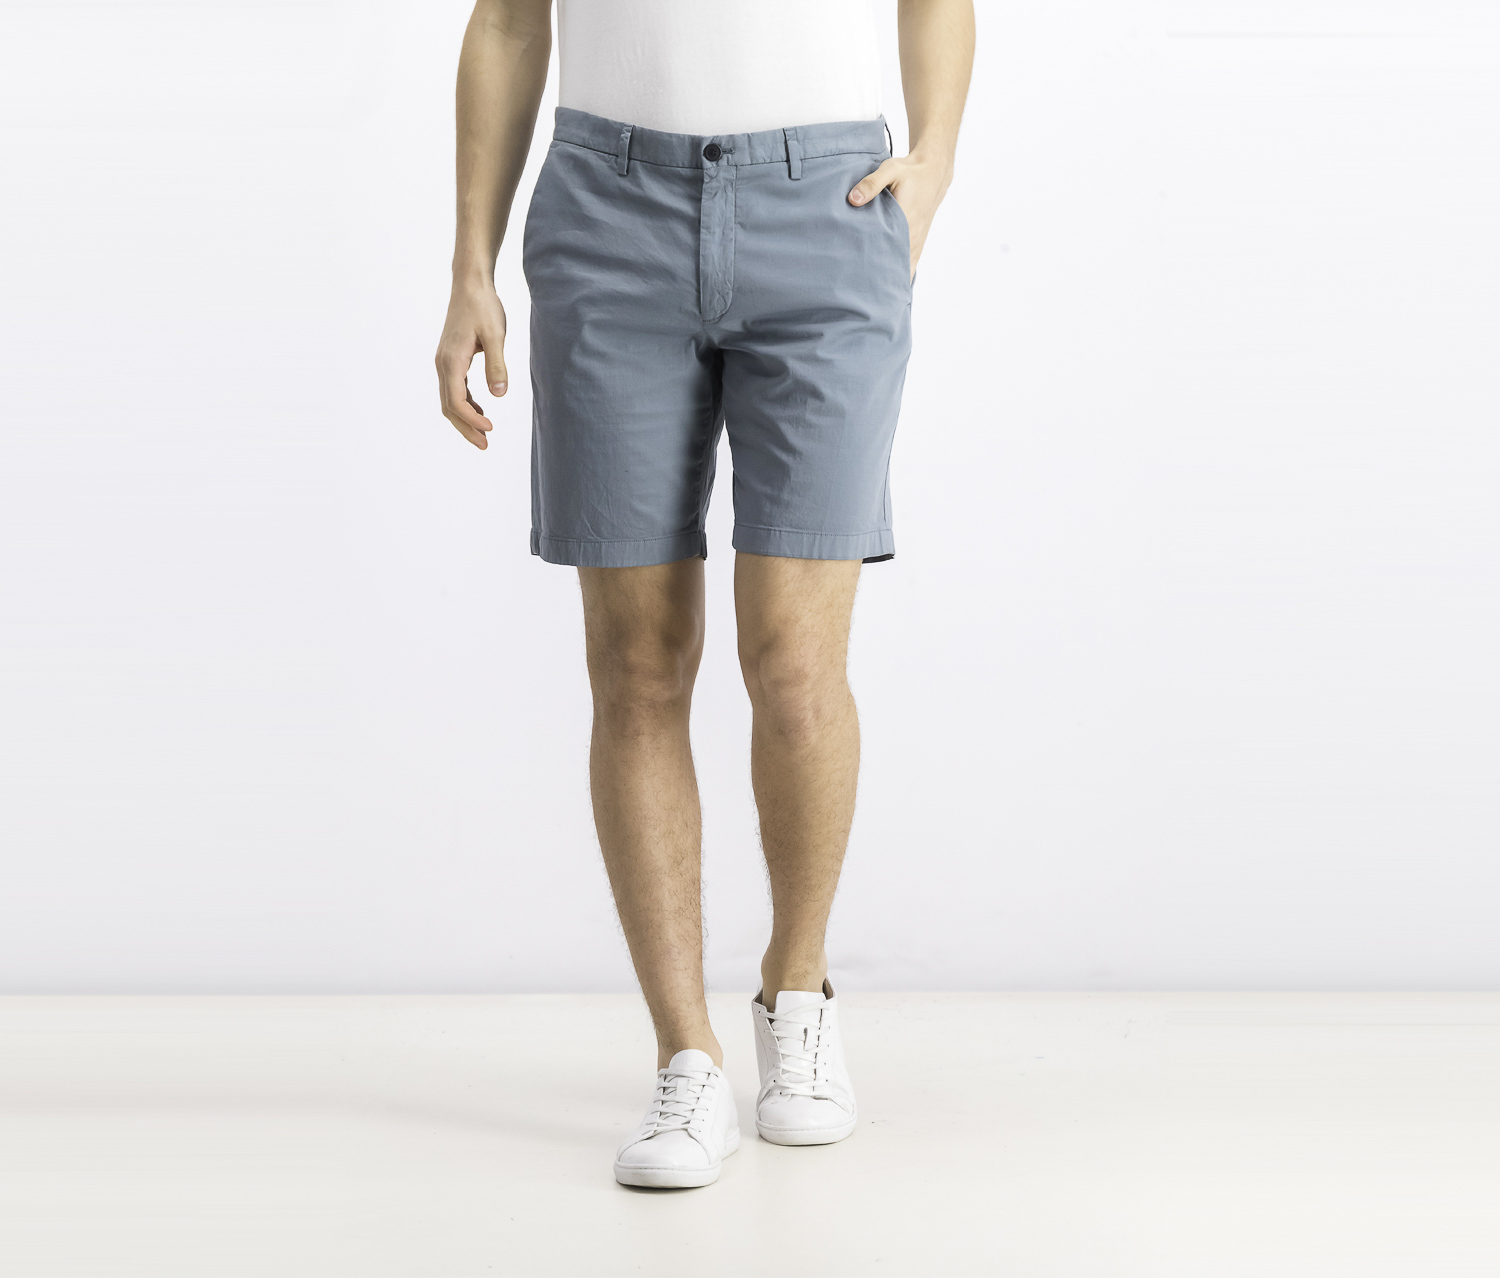 Men's Plain Chino Shorts, Light Teal